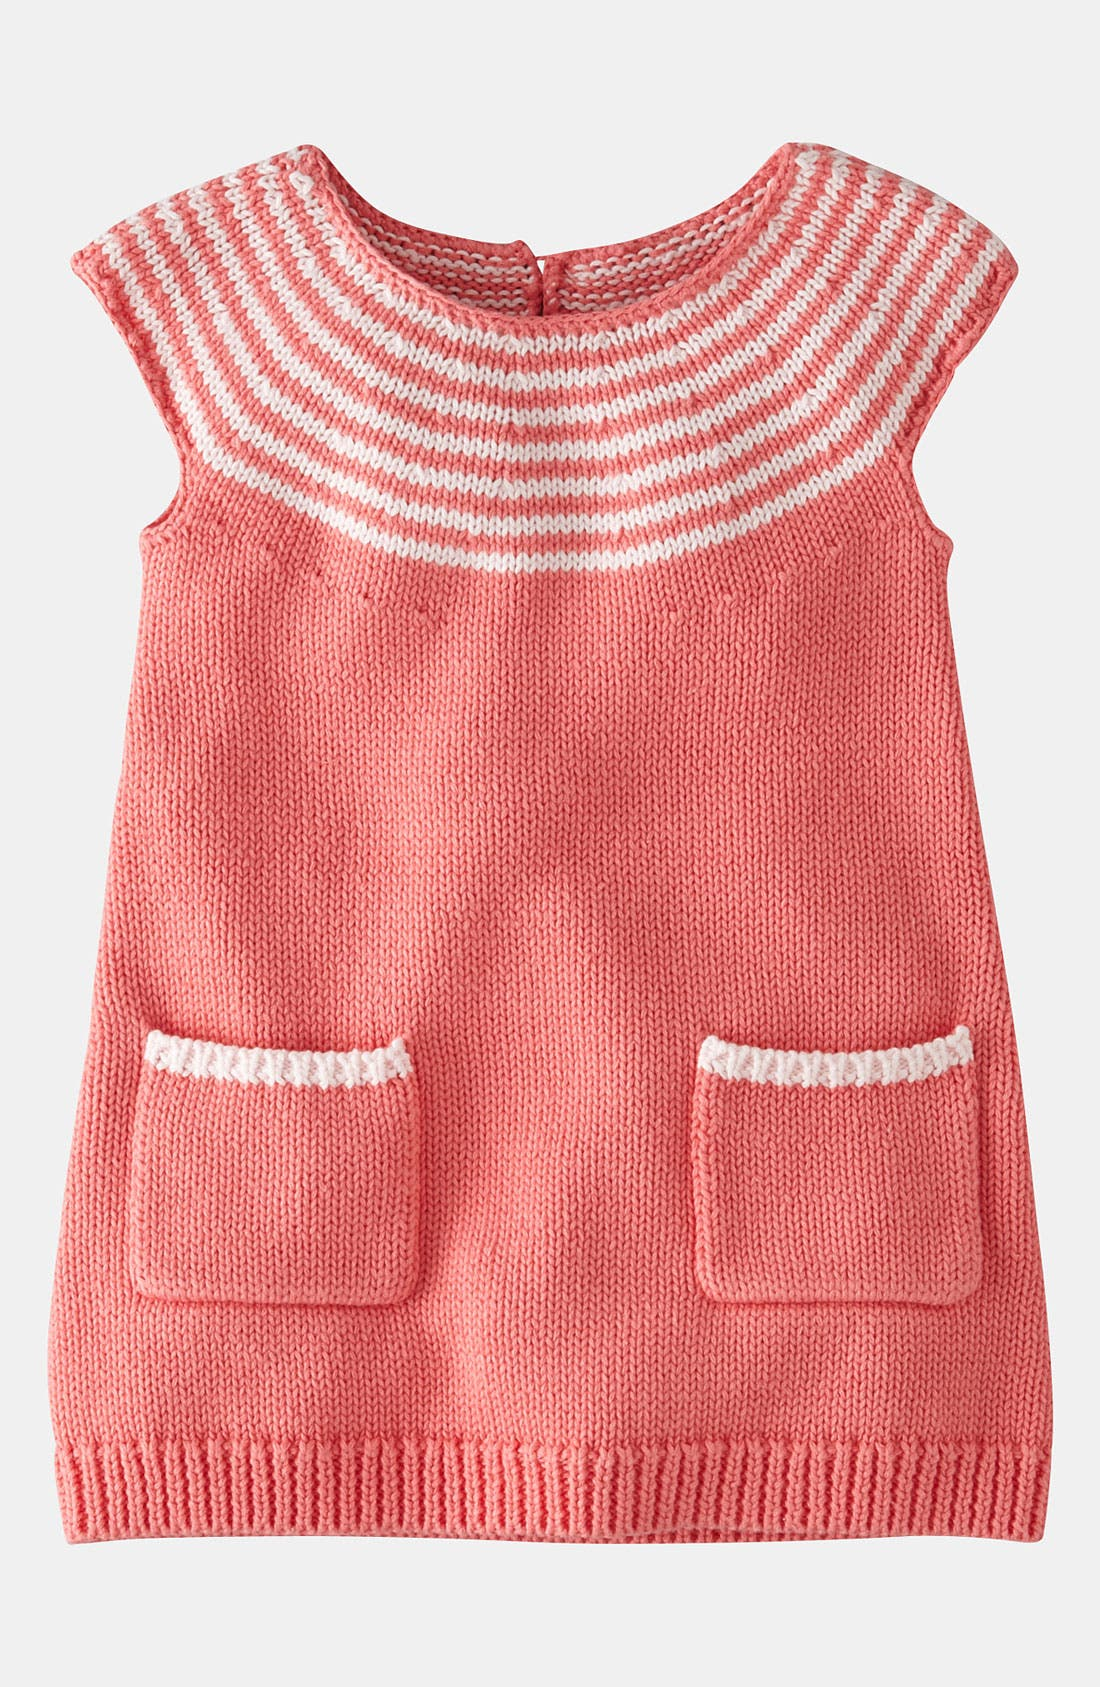 Alternate Image 1 Selected - Mini Boden Knit Dress (Baby)